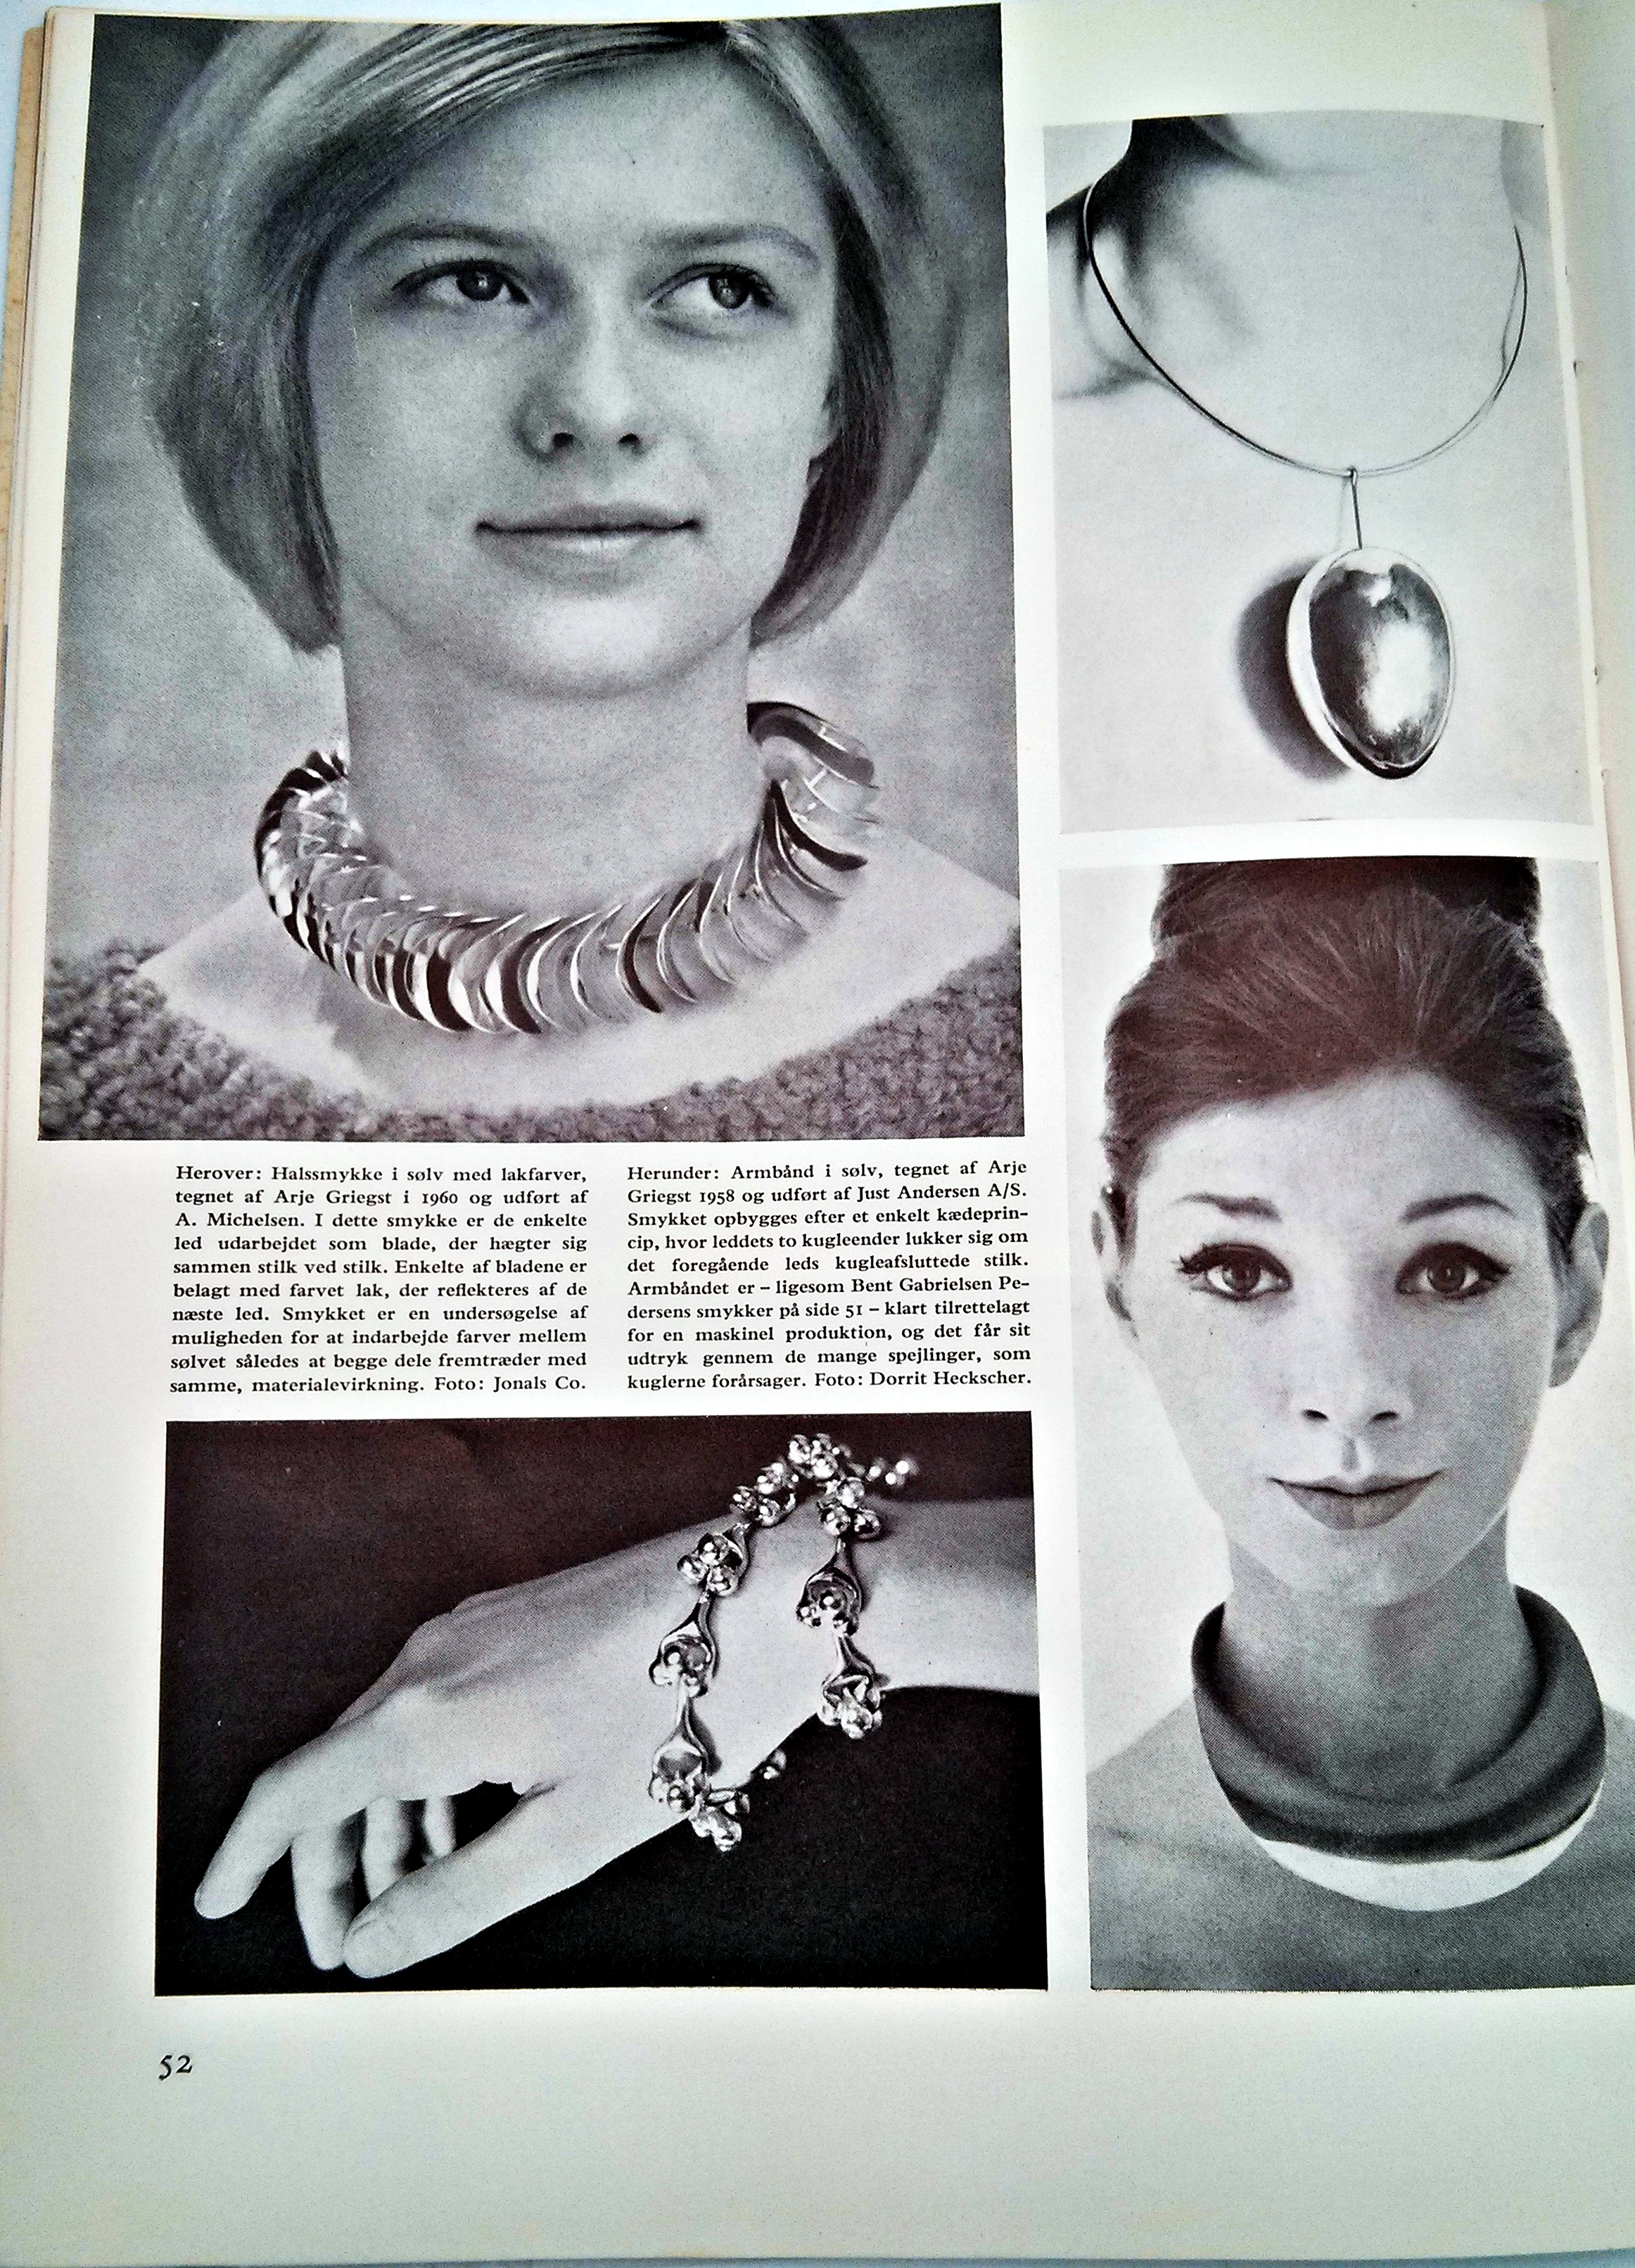 The necklace above is the same which has appeared in the previous Just Andersen advertisement and was designed by Arje Griegst in 1960 using a series of interconnected tabs which gracefully curves around the neck where it lies.  At the bottom right, we see the neckband displayed on the cover of the magazine, designed by Arje Griegst in 1960 as well, also produced by Just Andersen A/S. the neckband gracefully cups the neck of the wearer and helps to illustrate an execution that tests the limits of the silver. And to the bottom left, a silver bracelet design in 1958 by Arje Griegst for Just Andersen that uses a single style of link which with a series of interlocking spheres interconnect in a long continuous band. The shapes are accentuated by the way the light dances upon the ball connectors.